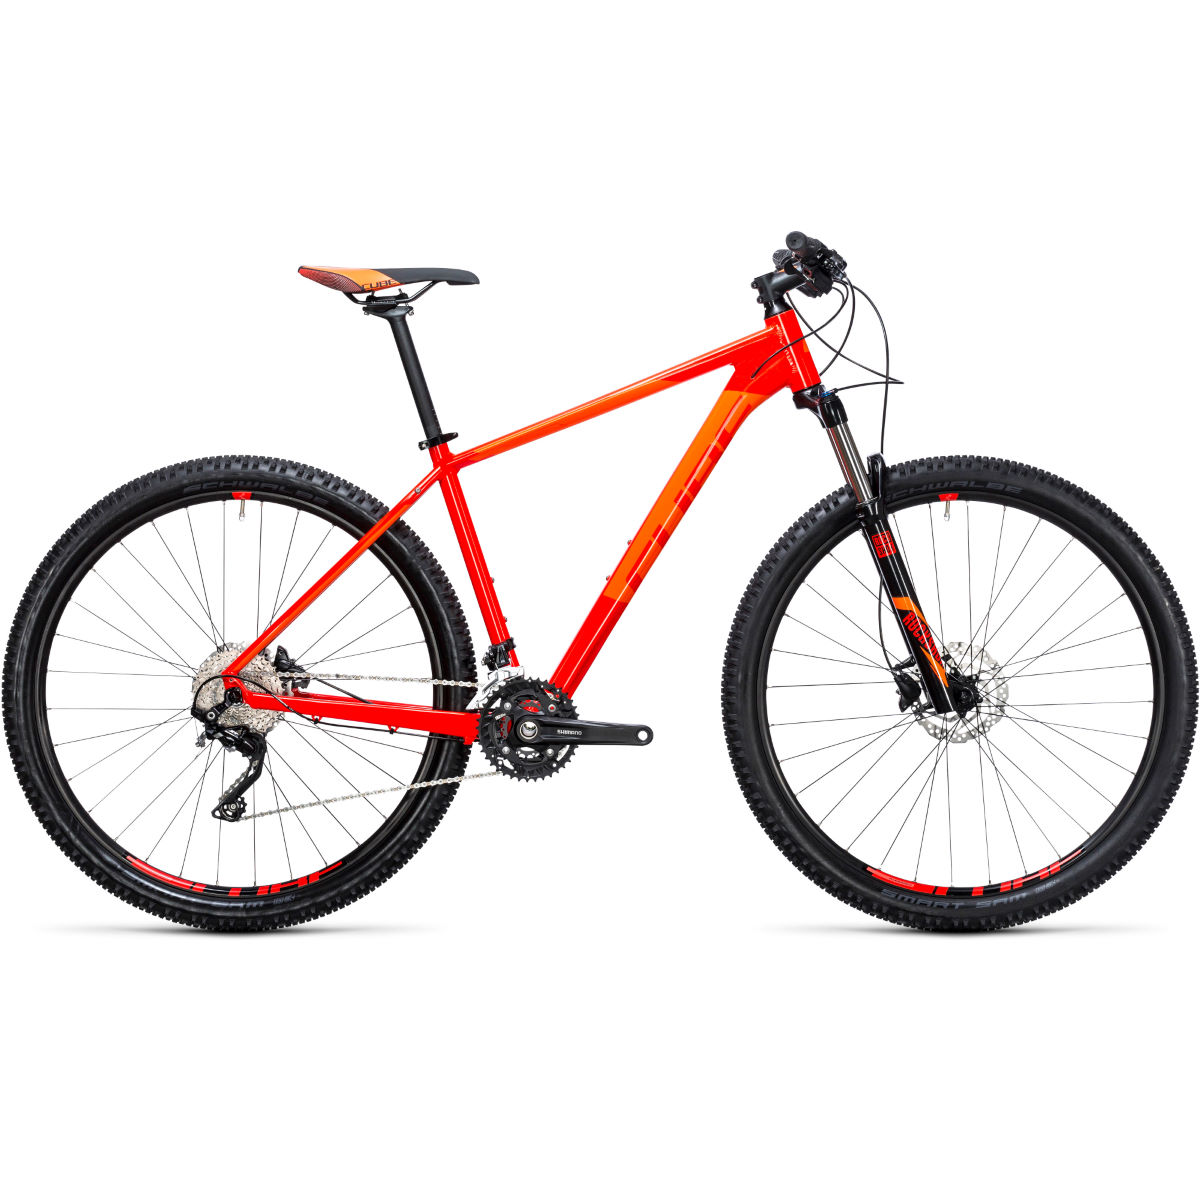 VTT semi-rigide Cube Attention 27,5 pouces (2017) - Red - Flashorange